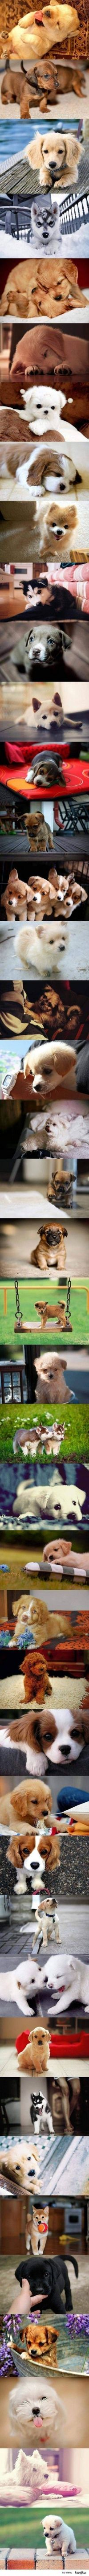 im sorry i know this has nothing to do with disney but i just couldnt resist there so darn cute!